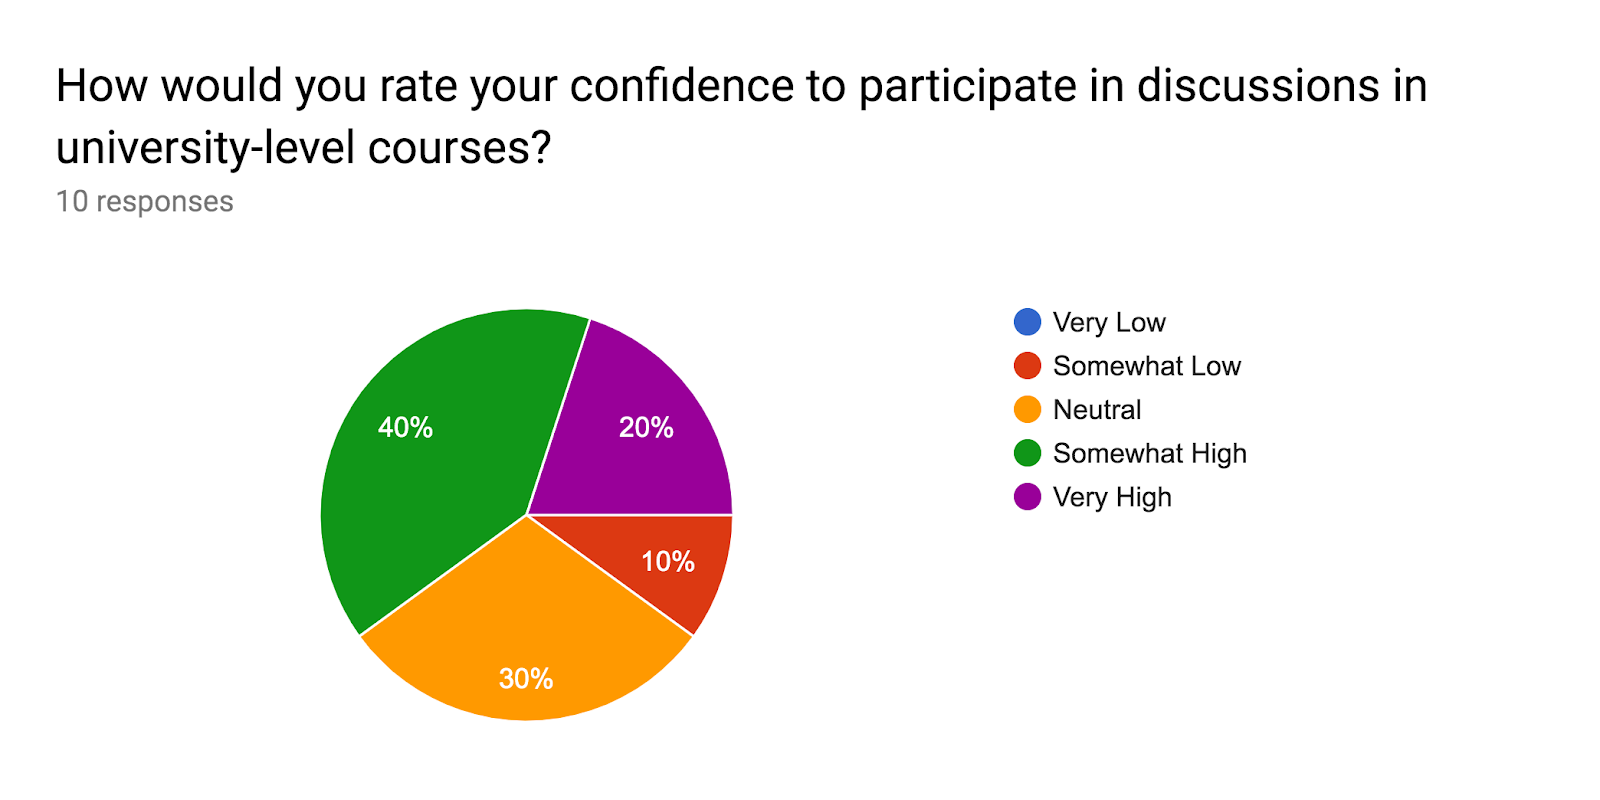 Forms response chart. Question title: How would you rate your confidence to participate in discussions in university-level courses?. Number of responses: 10 responses.